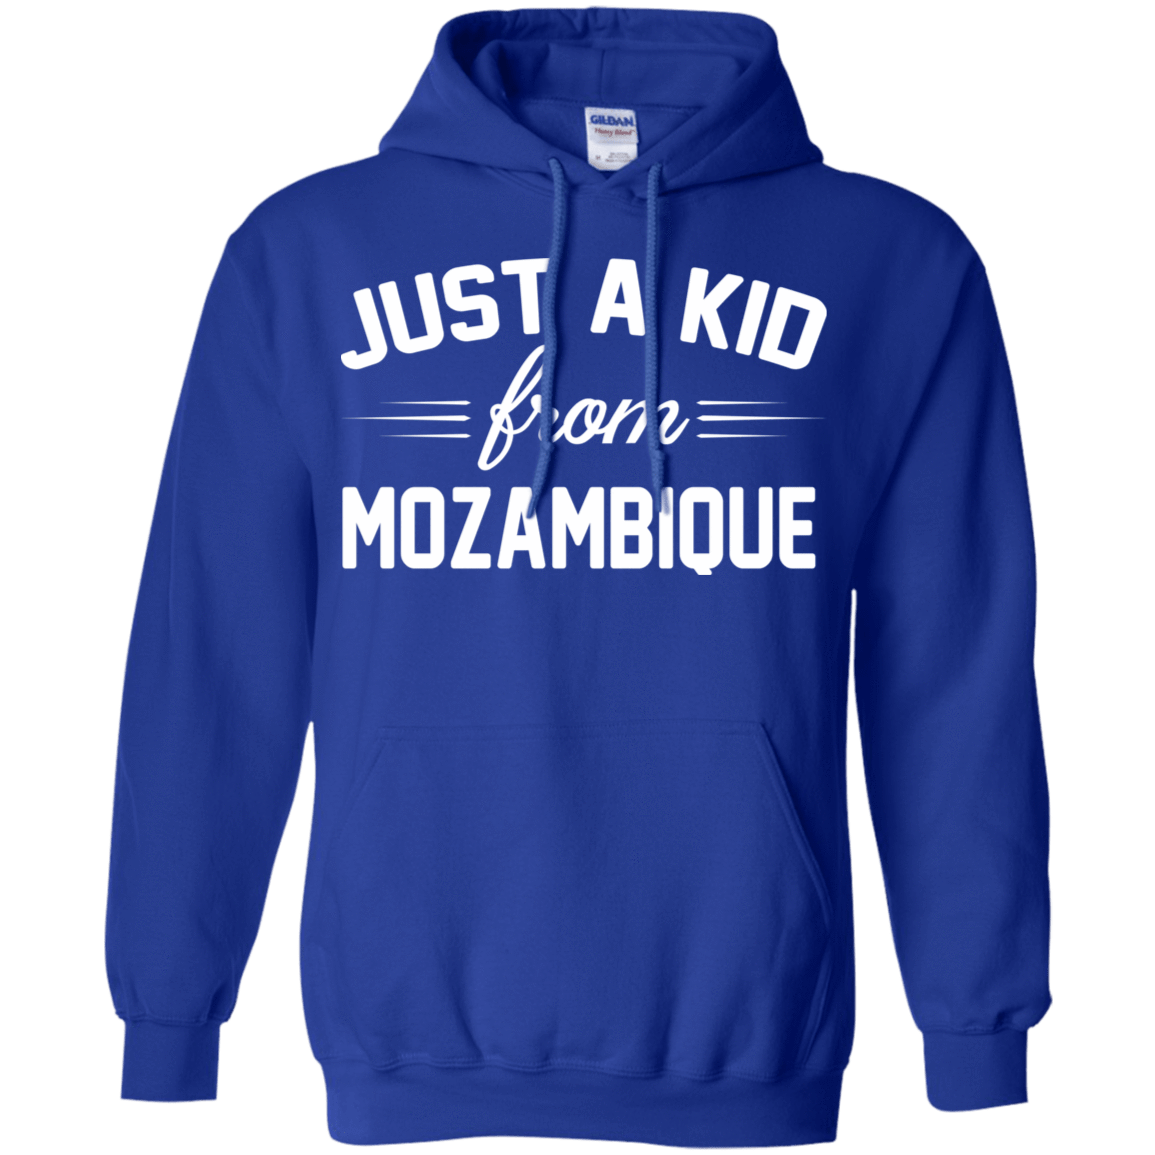 Just a Kid Store | Mozambique T-Shirts, Hoodie, Tank 541-4765-72091588-23175 - Tee Ript